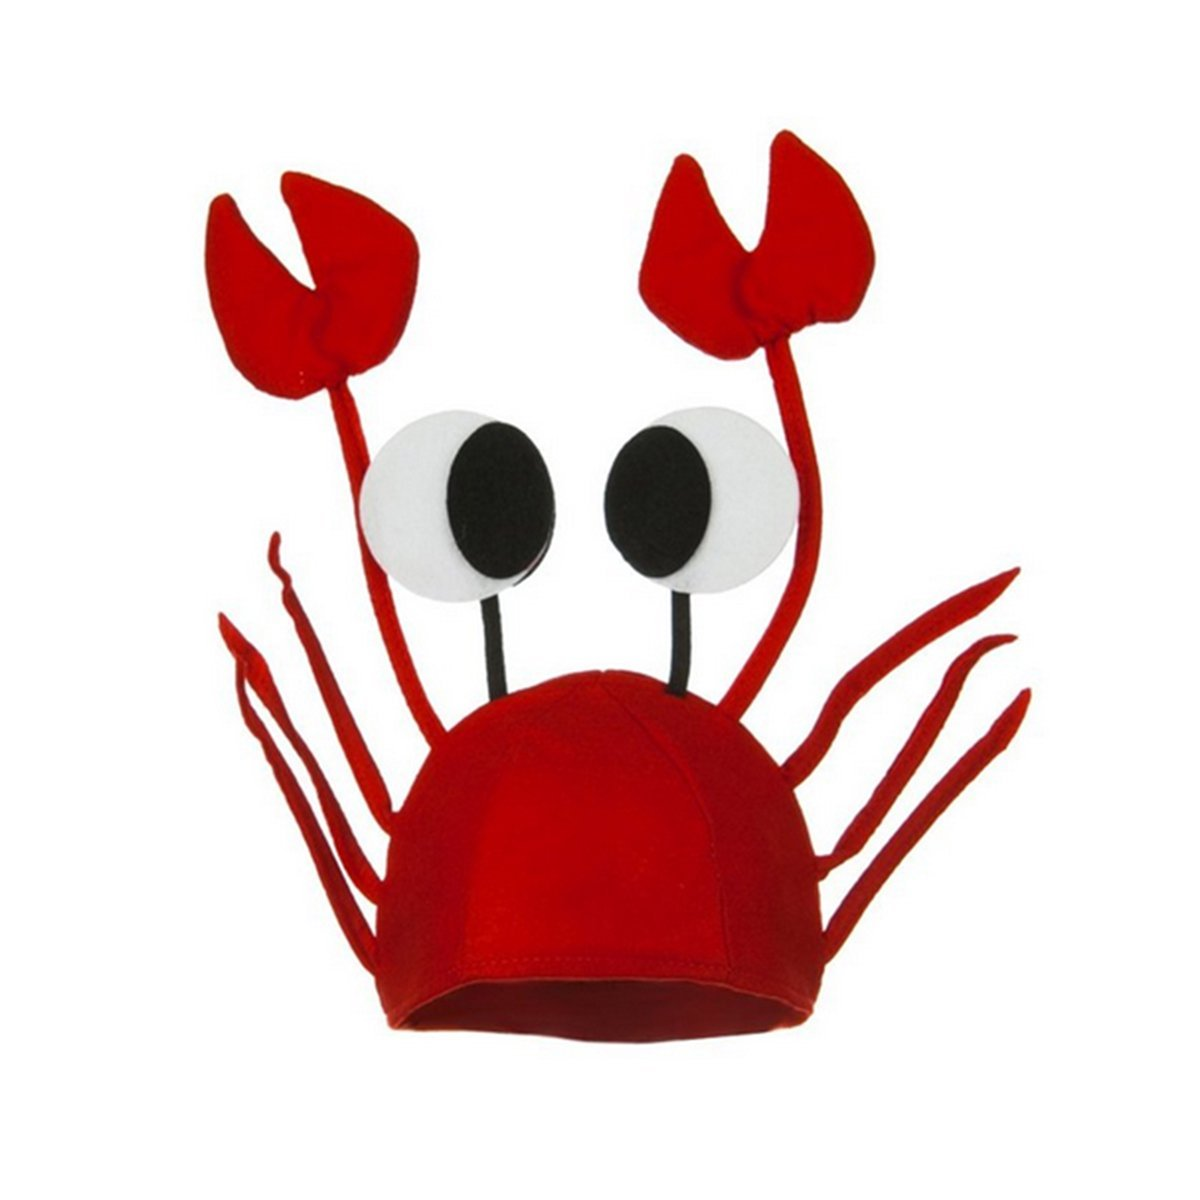 a5576139e77 Get Quotations · Men s Women s Novelty Hat 3D Lobster Crawfish Crab Seafood  Hat With Claws ...